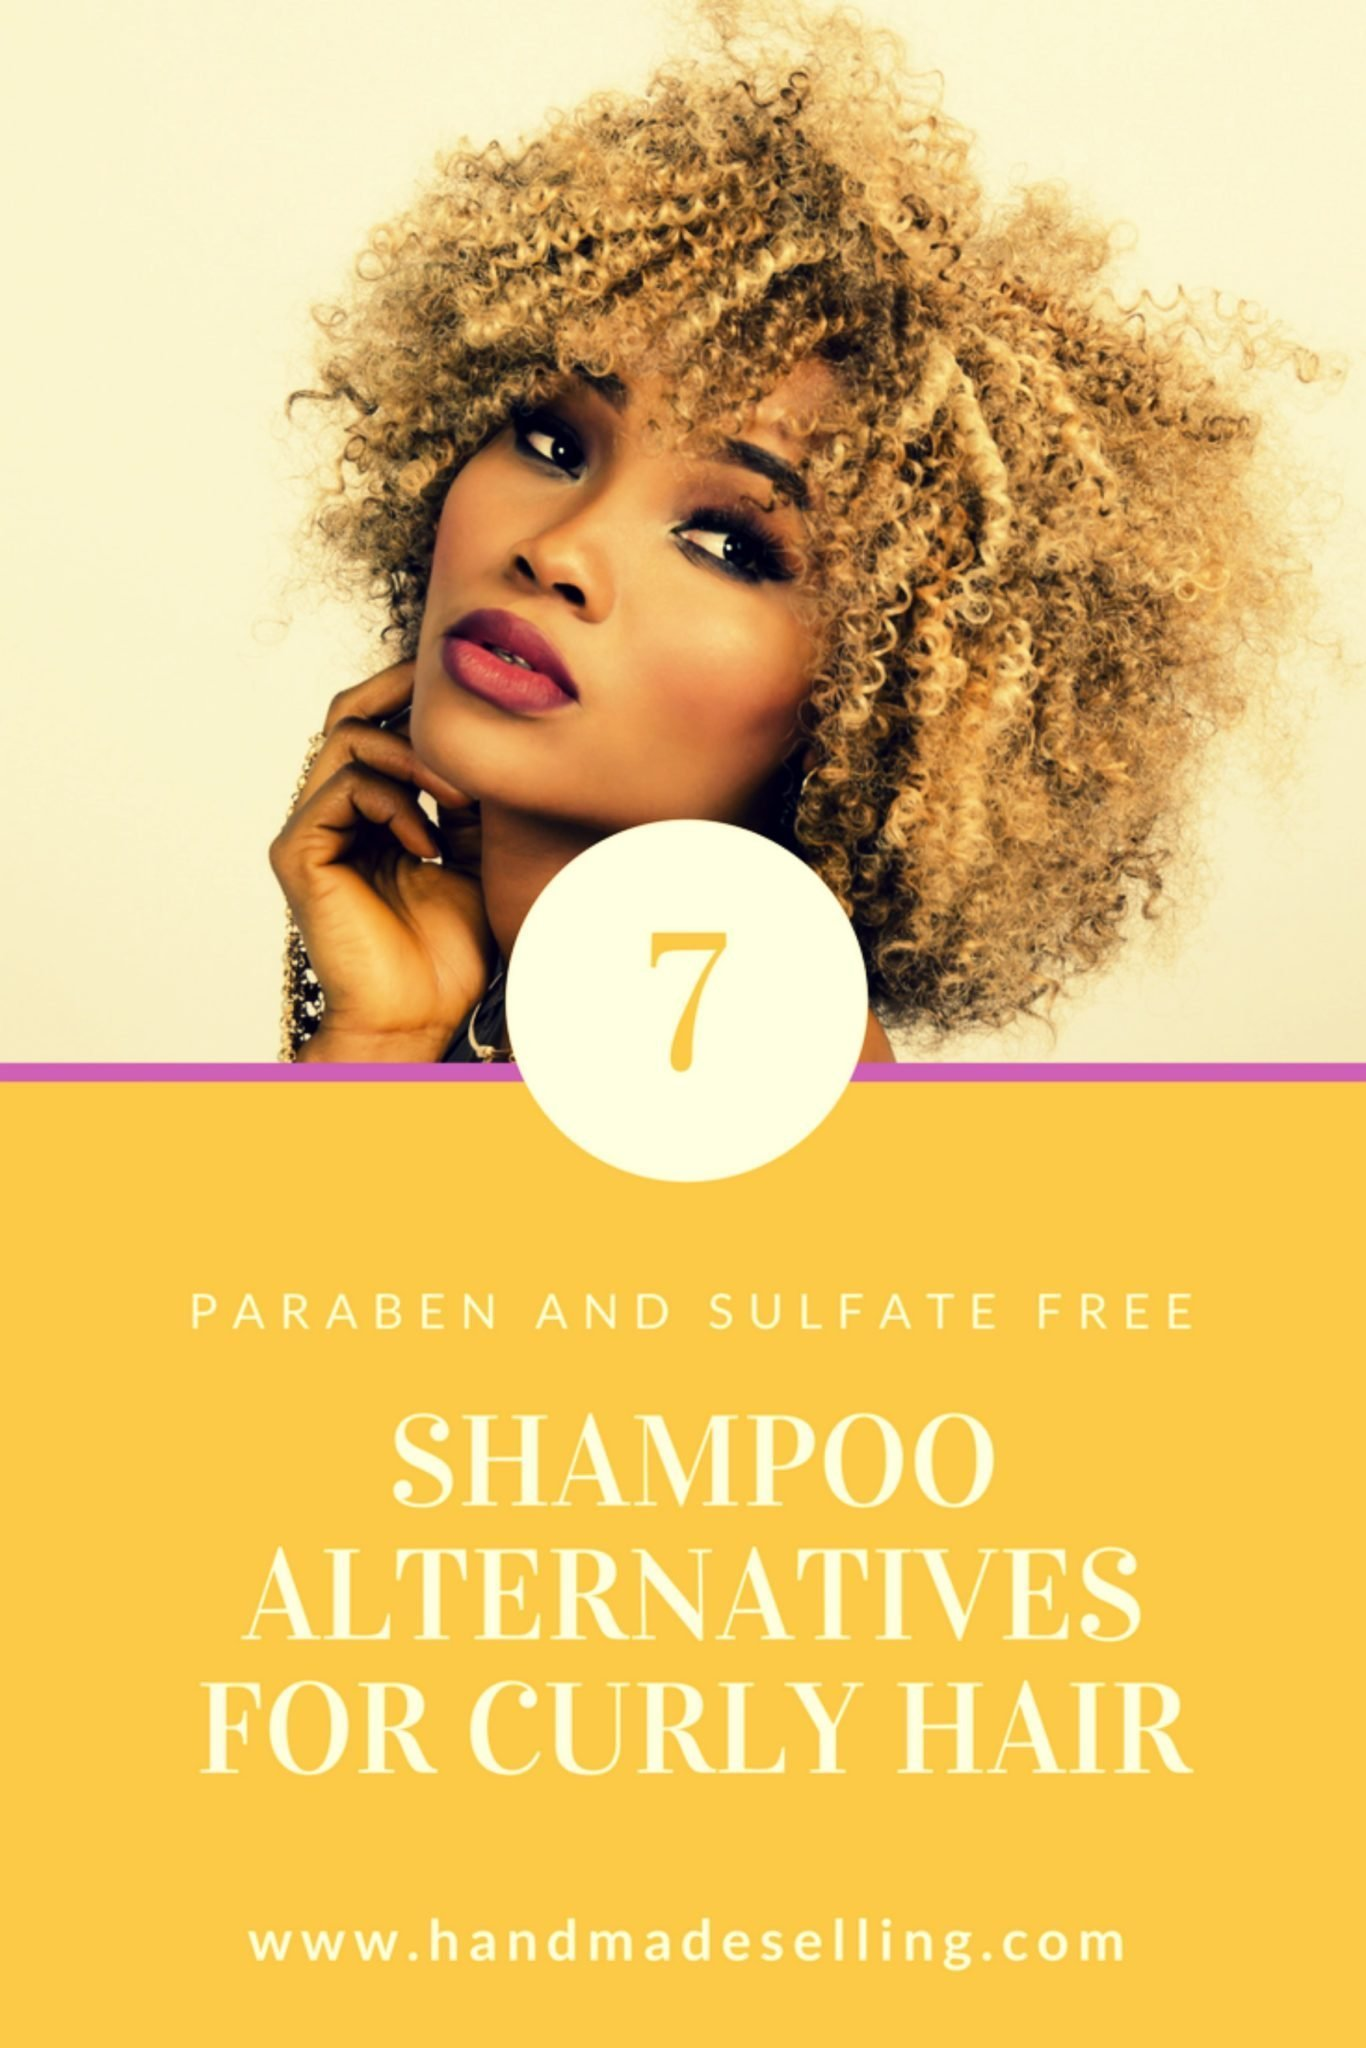 Undo straight perm - Know How To Make Miracle Shampoo Replacement For Curly Hair